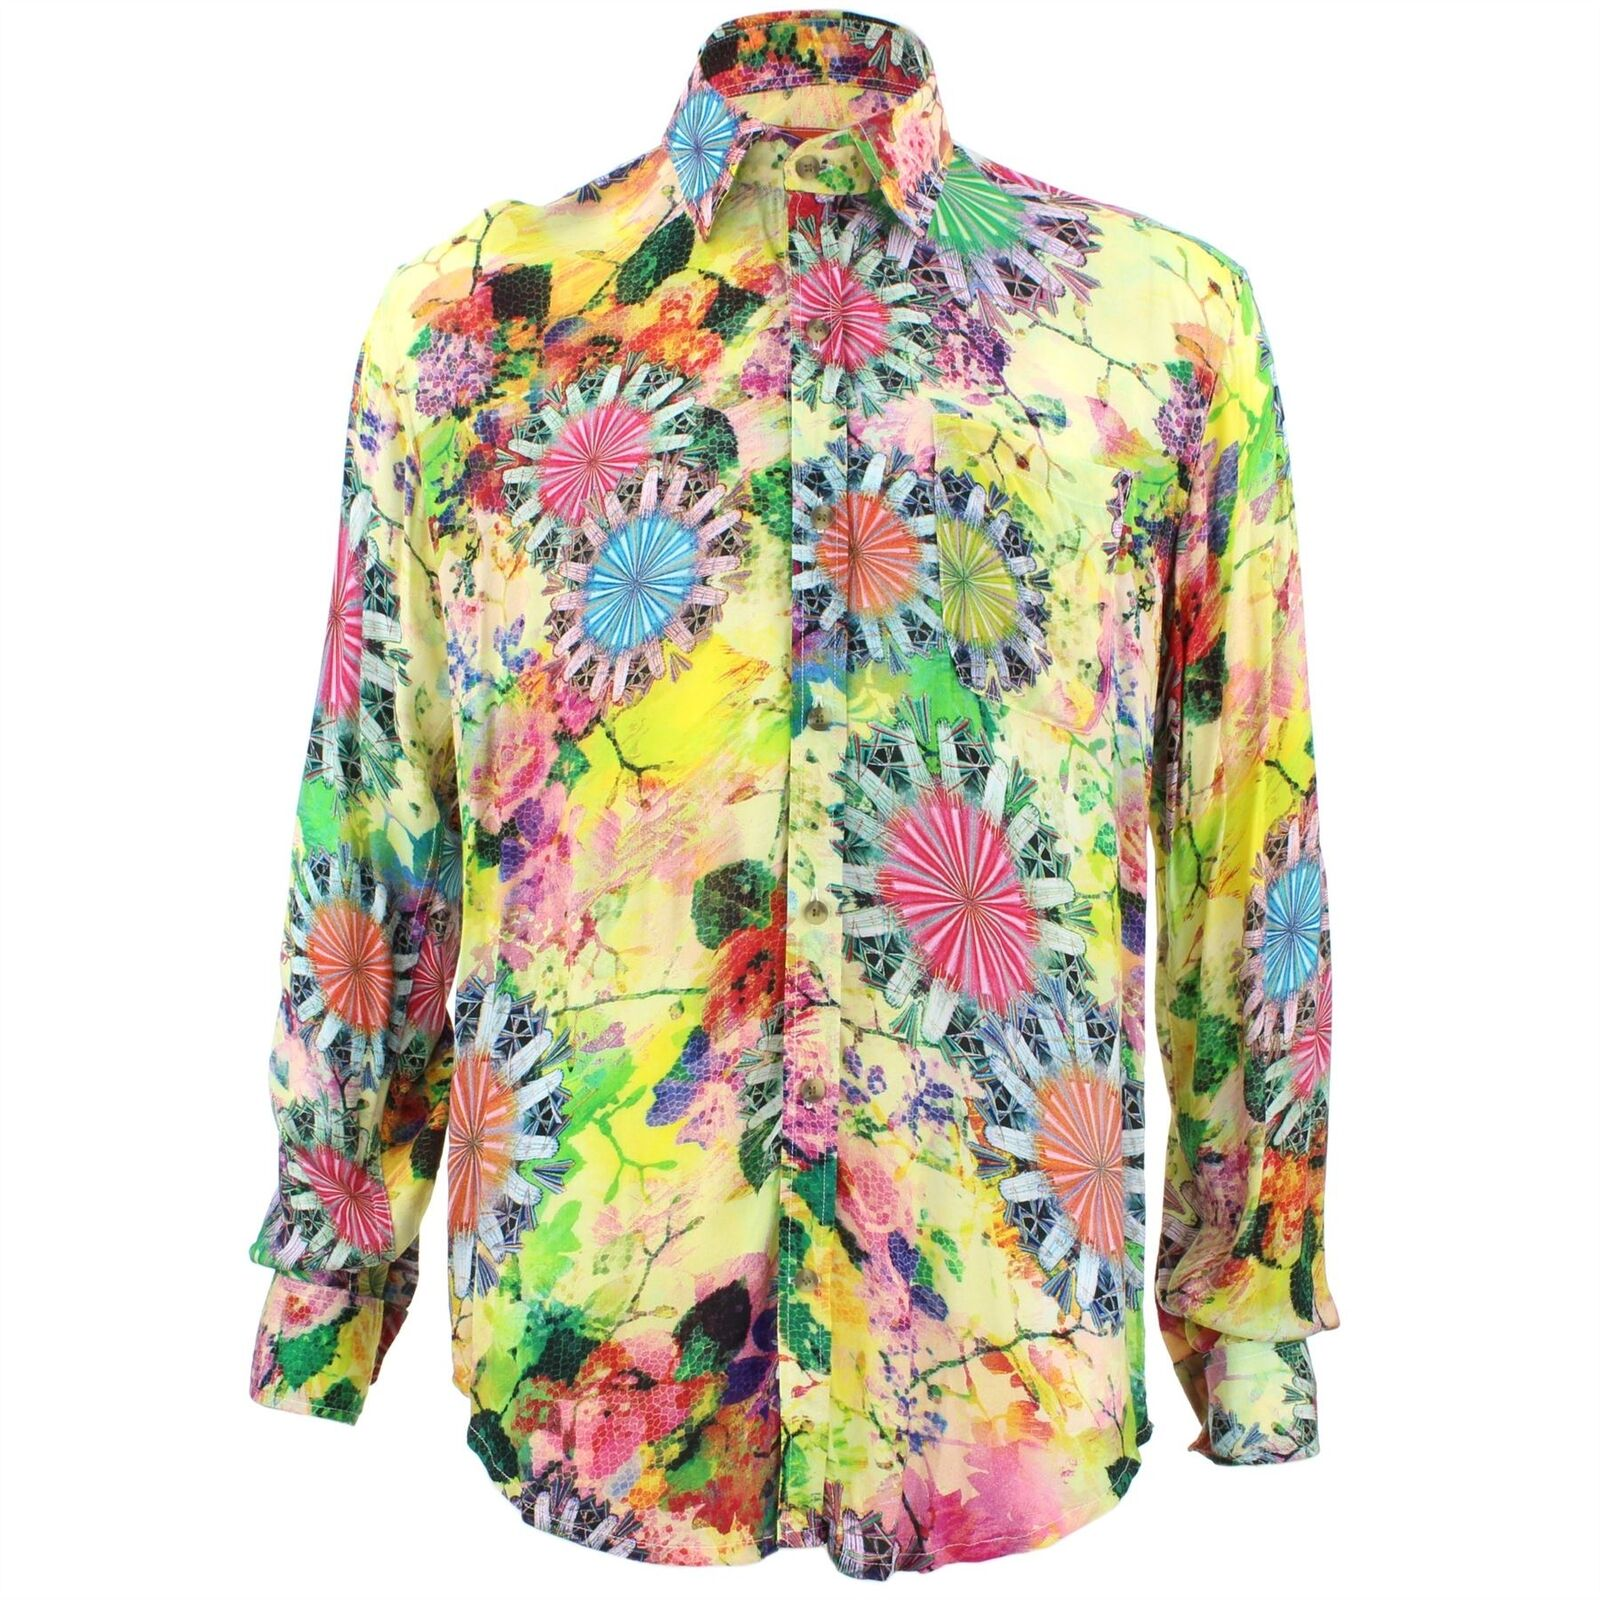 Men's Loud Shirt Retro Psychedelic Funky Party TAILORED FIT Yellow Abstract